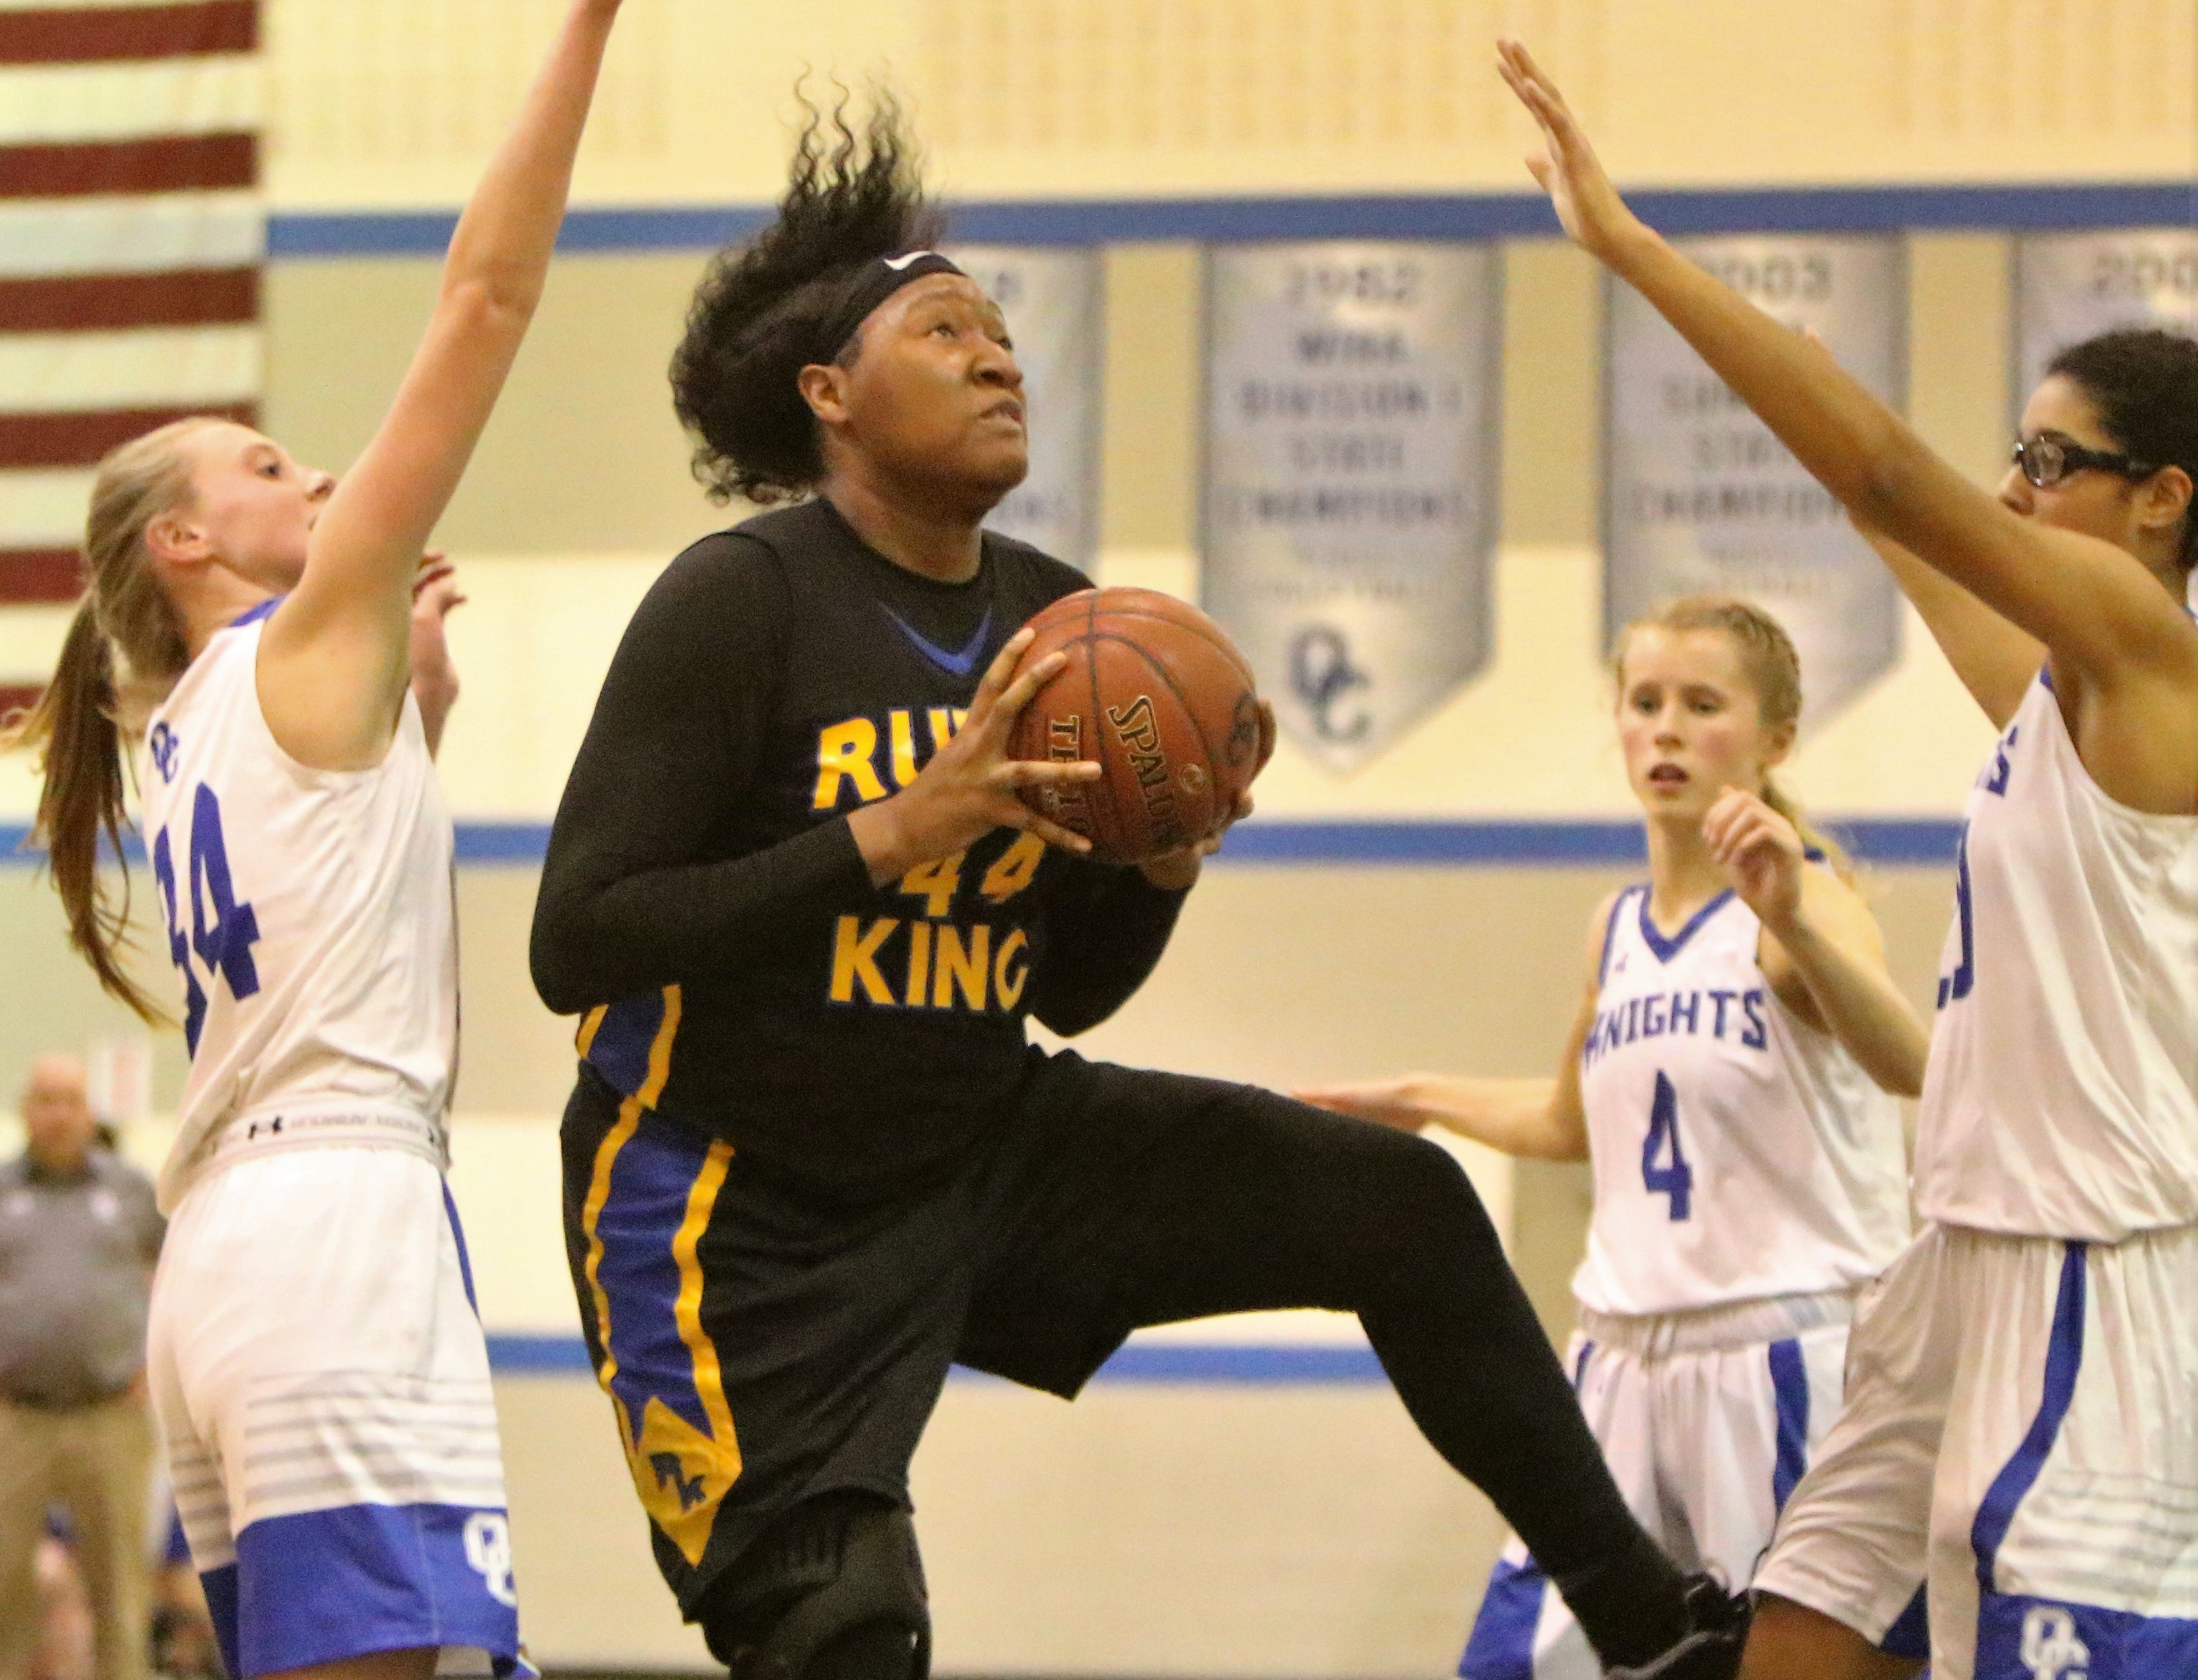 Milwaukee King center Sydnee Roby goes up for a shot near the rim against Oak Creek on December 4.